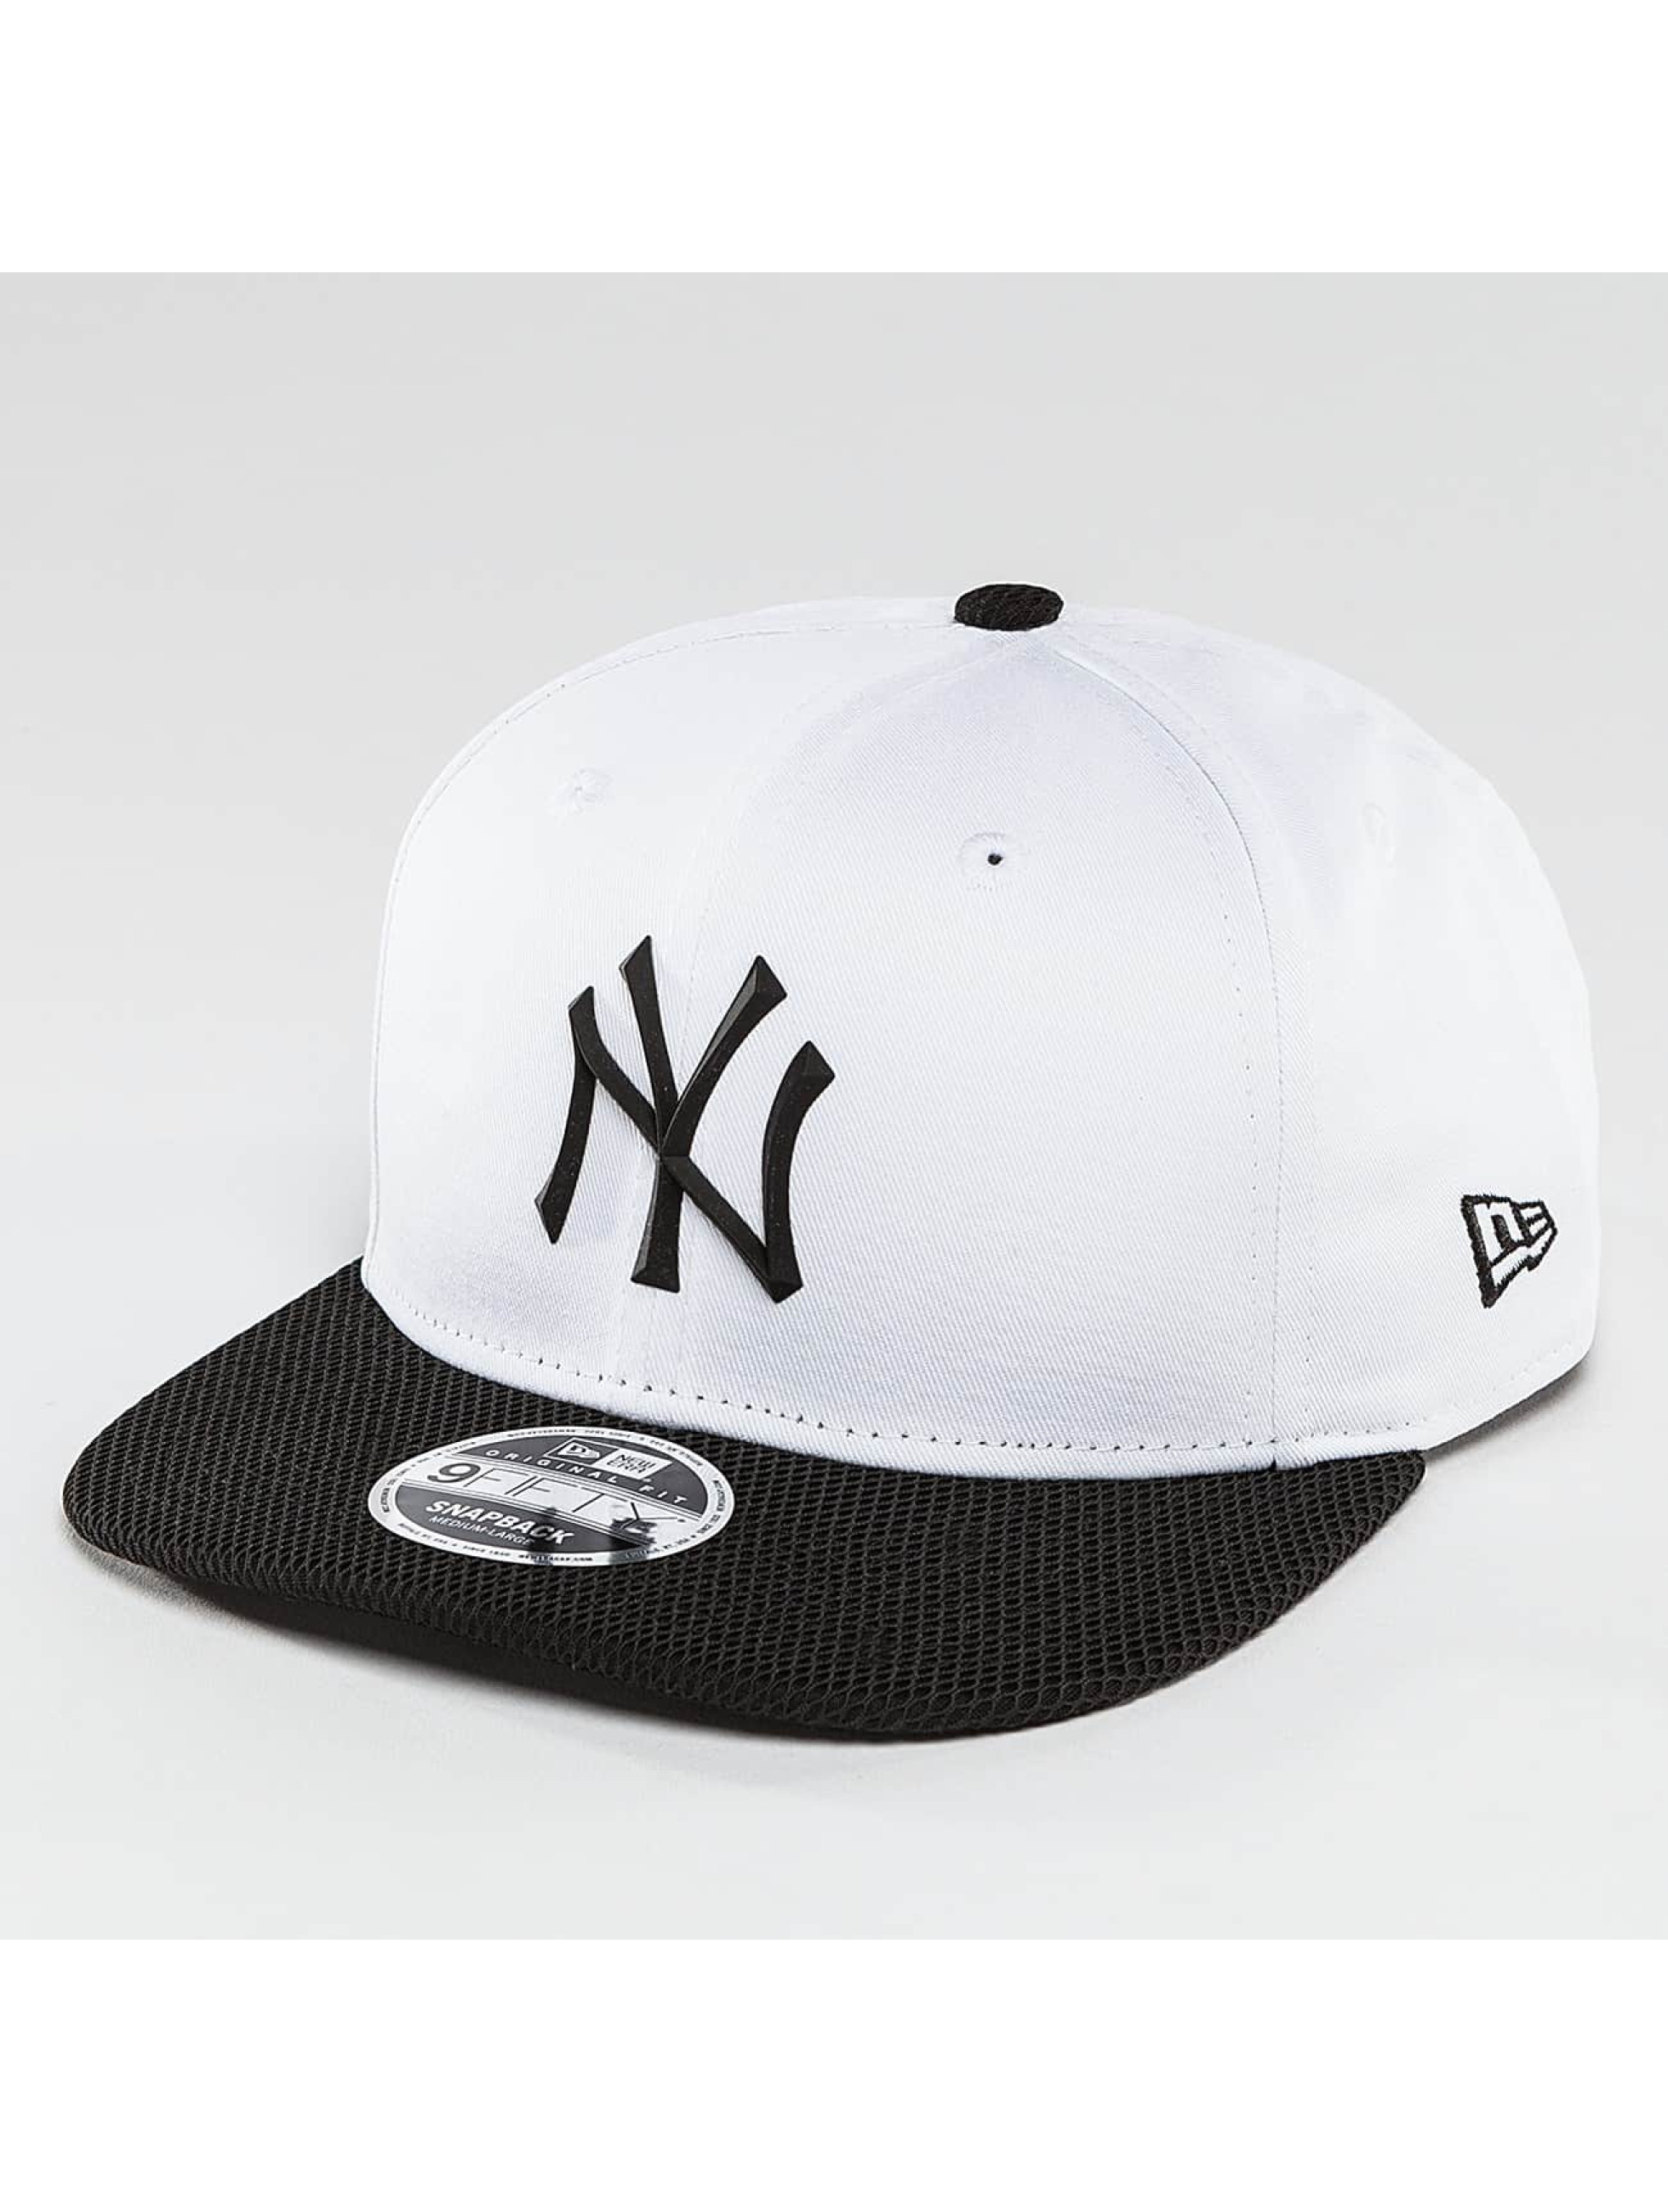 New Era Snapback Cap Rubber Prime NY Yankees white